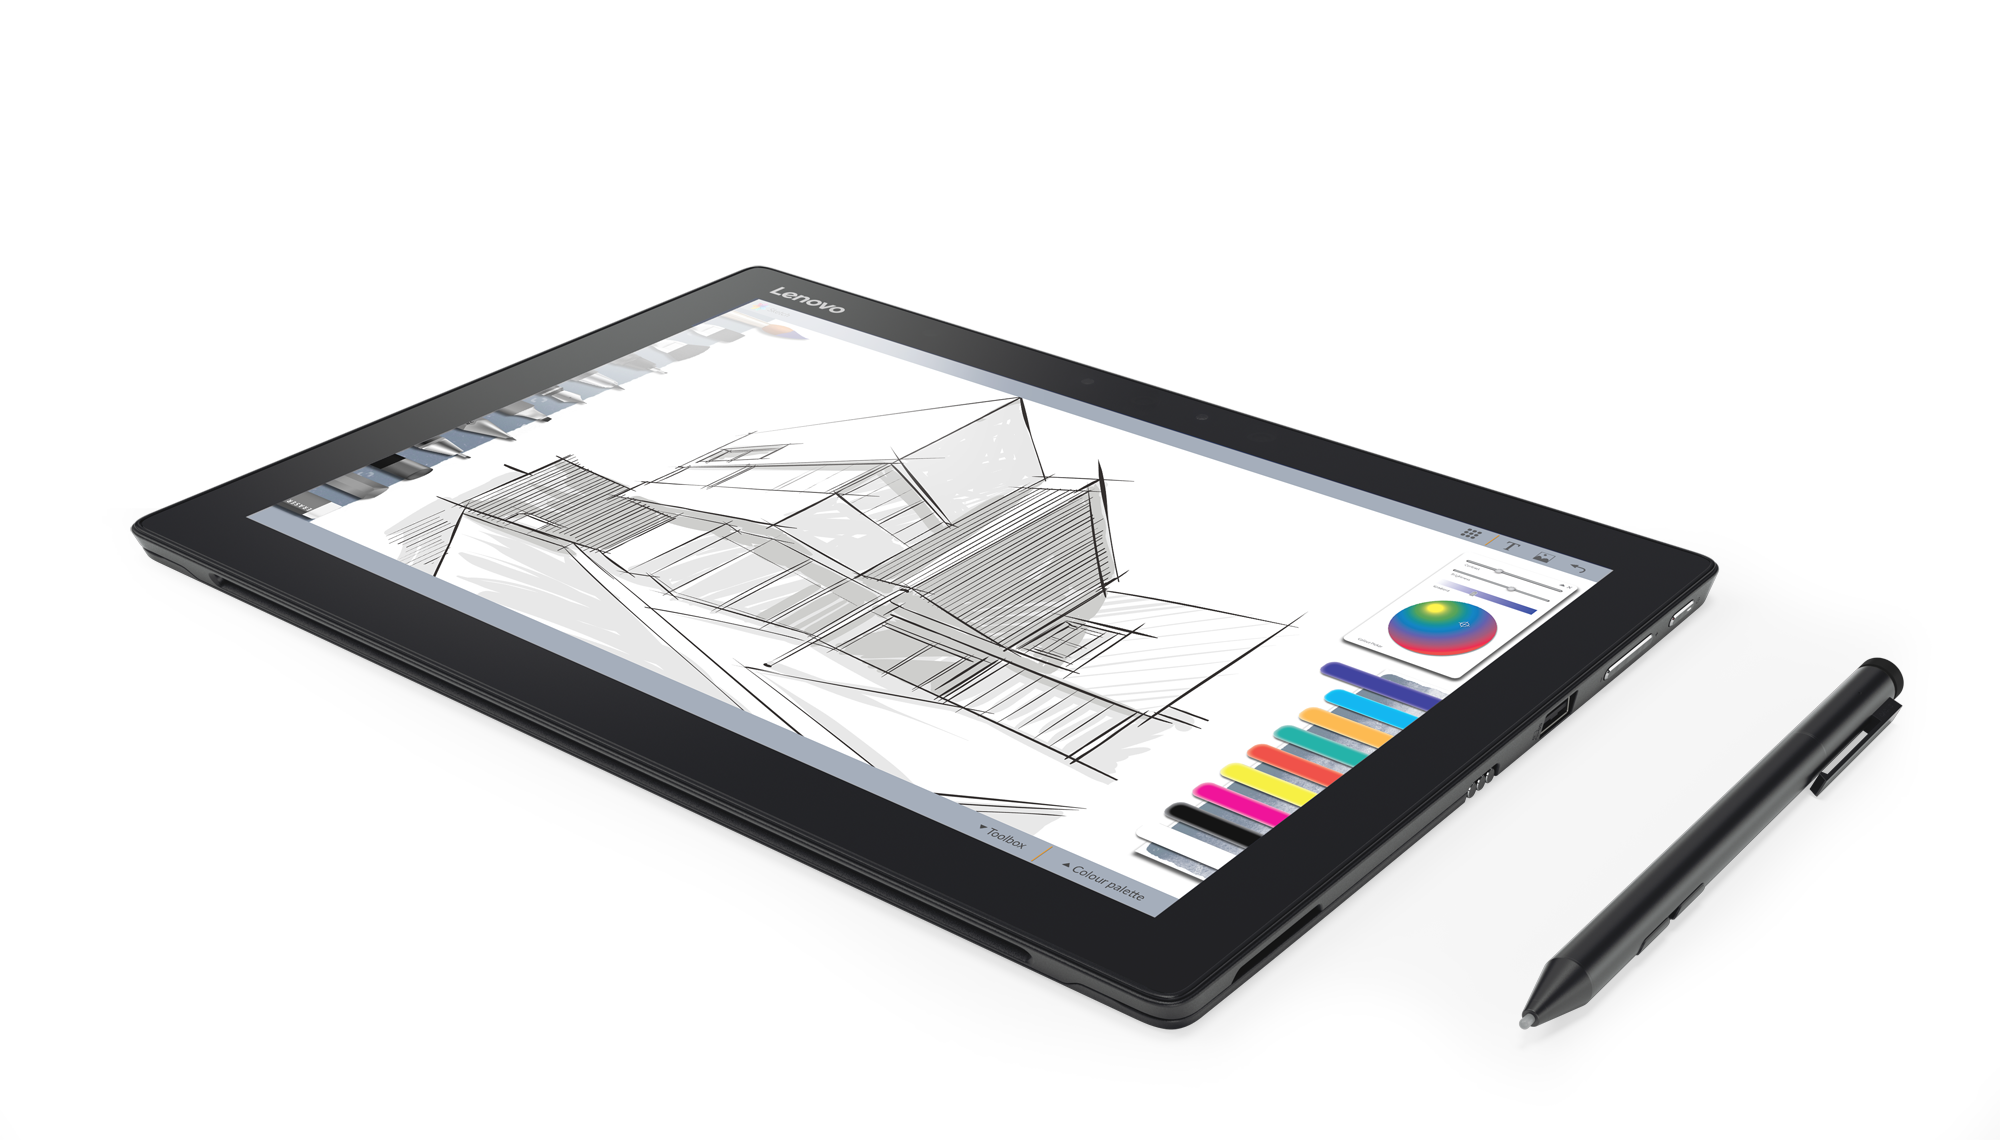 Drawing touchpad stylus. Ces new lenovo miix